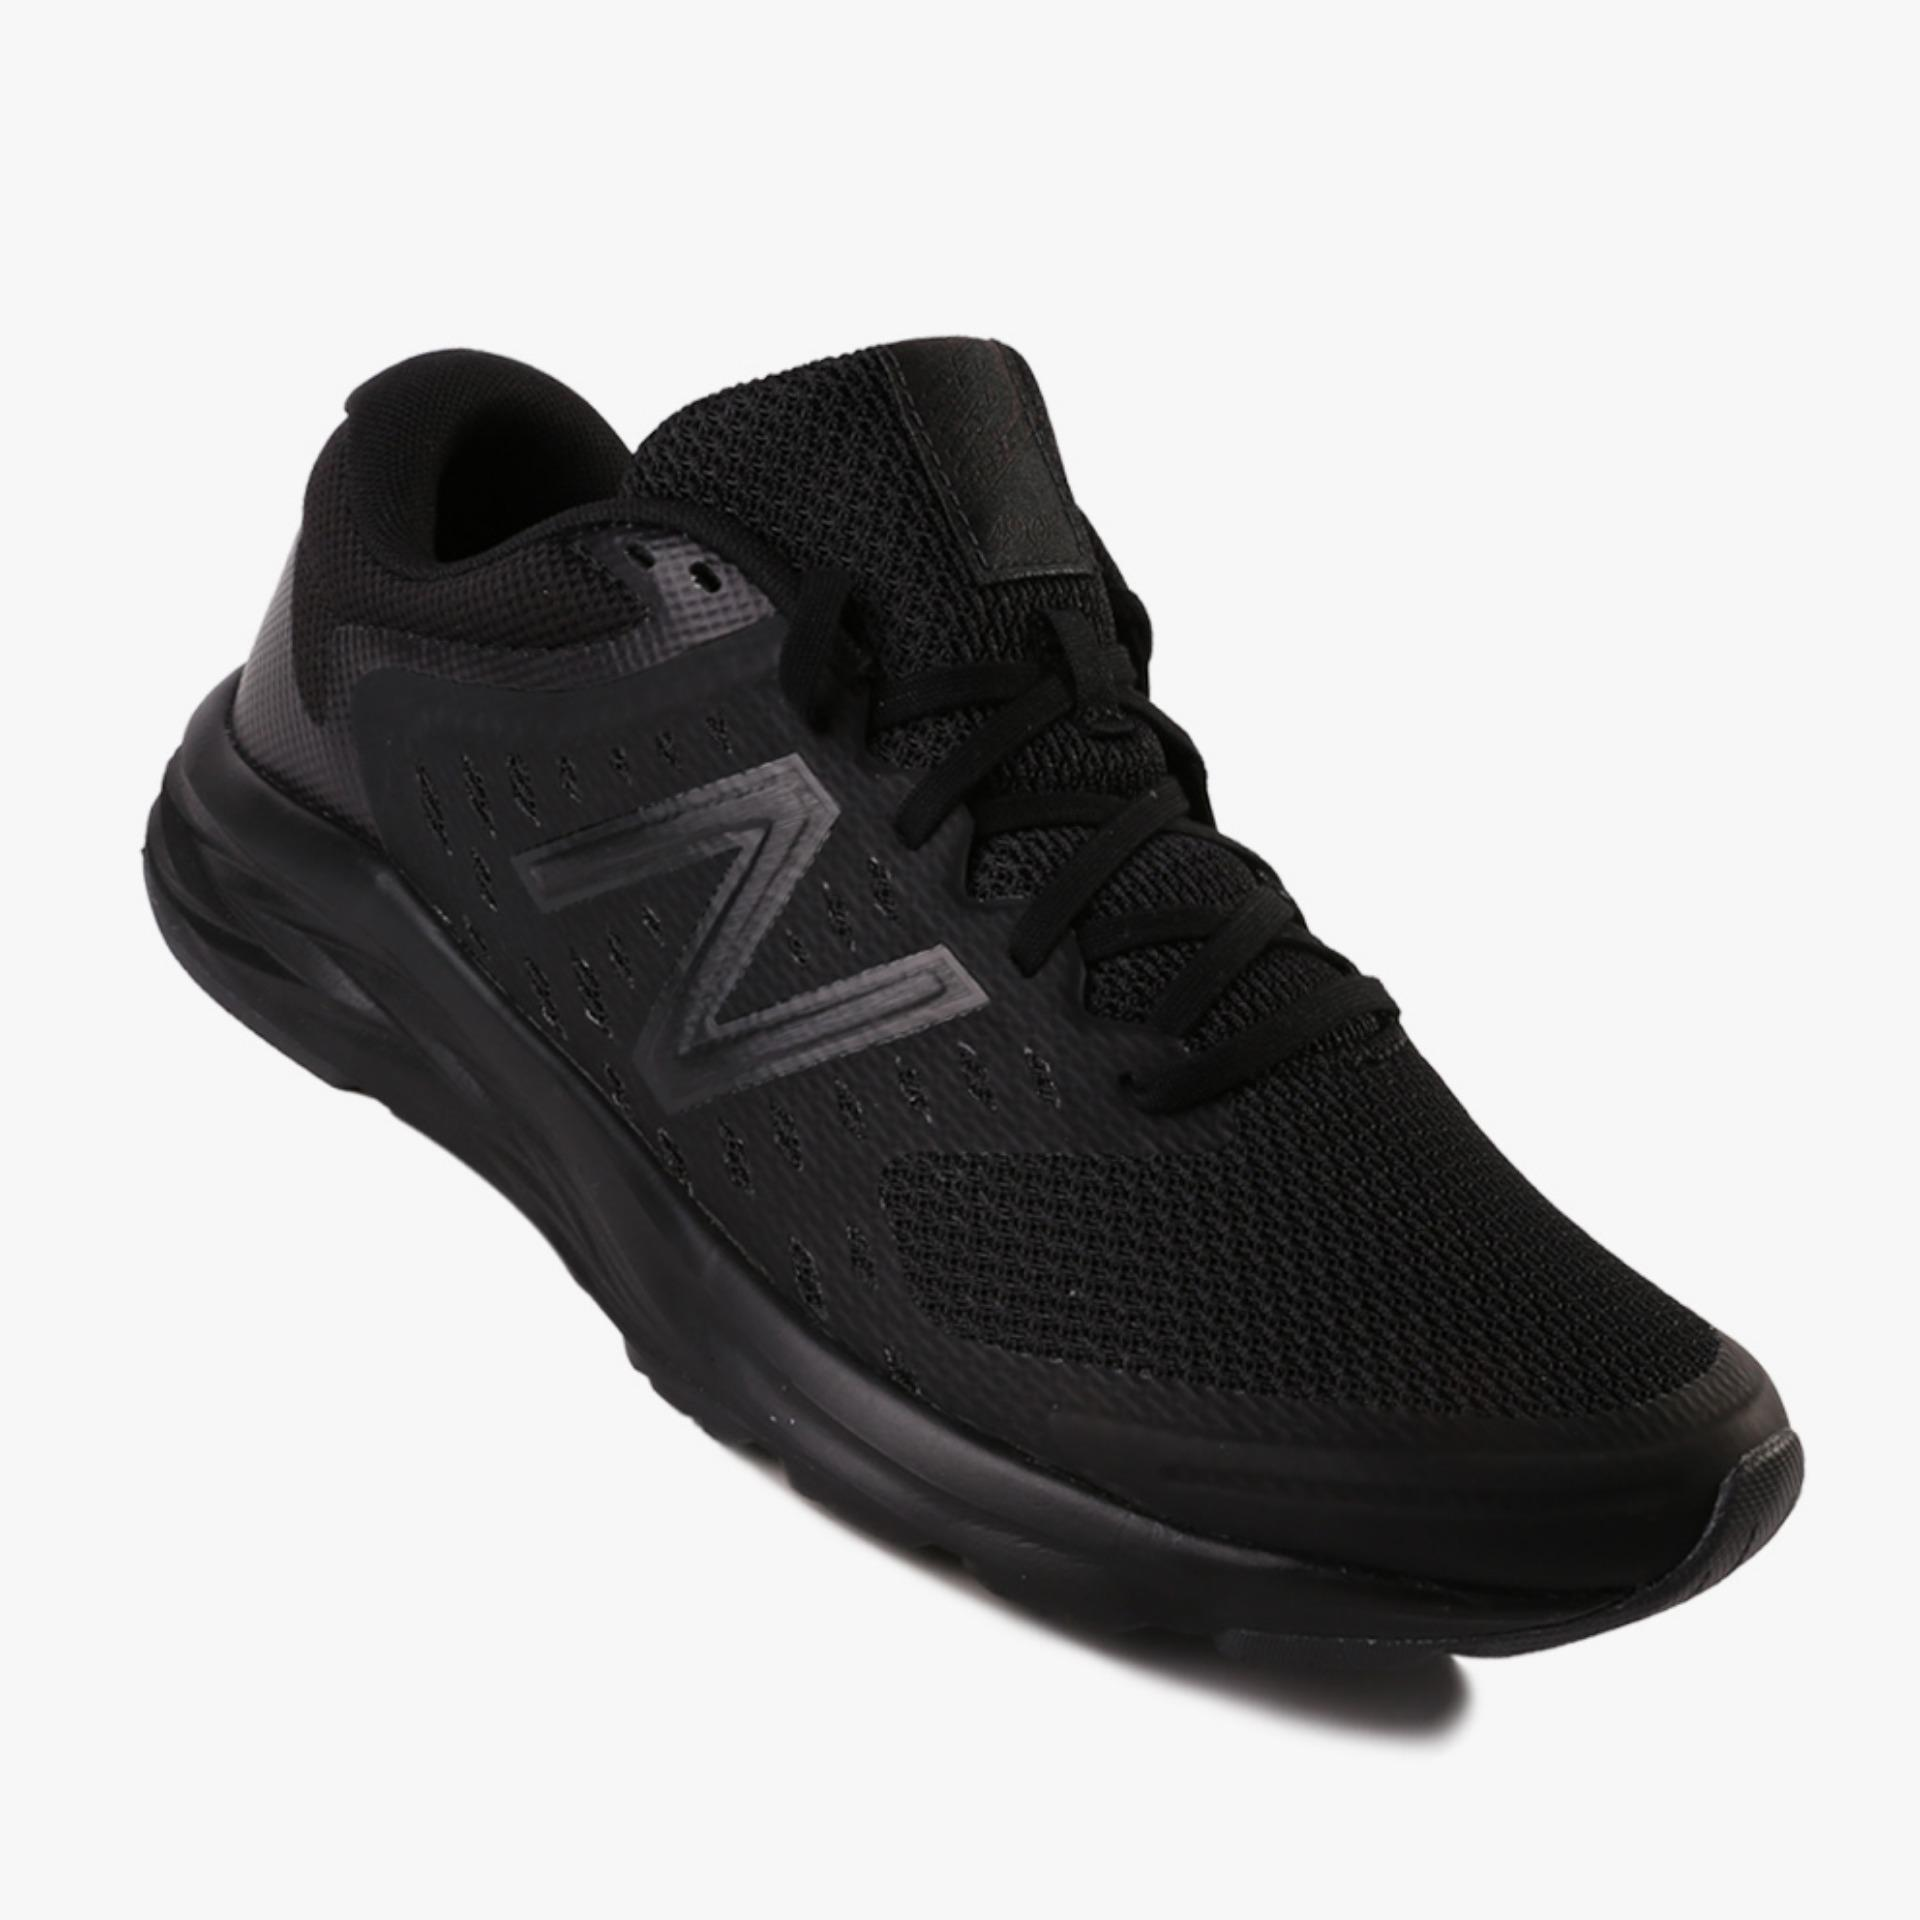 Dapatkan Segera New Balance Speed Ride 490 V5 Men S Running Shoes Hitam